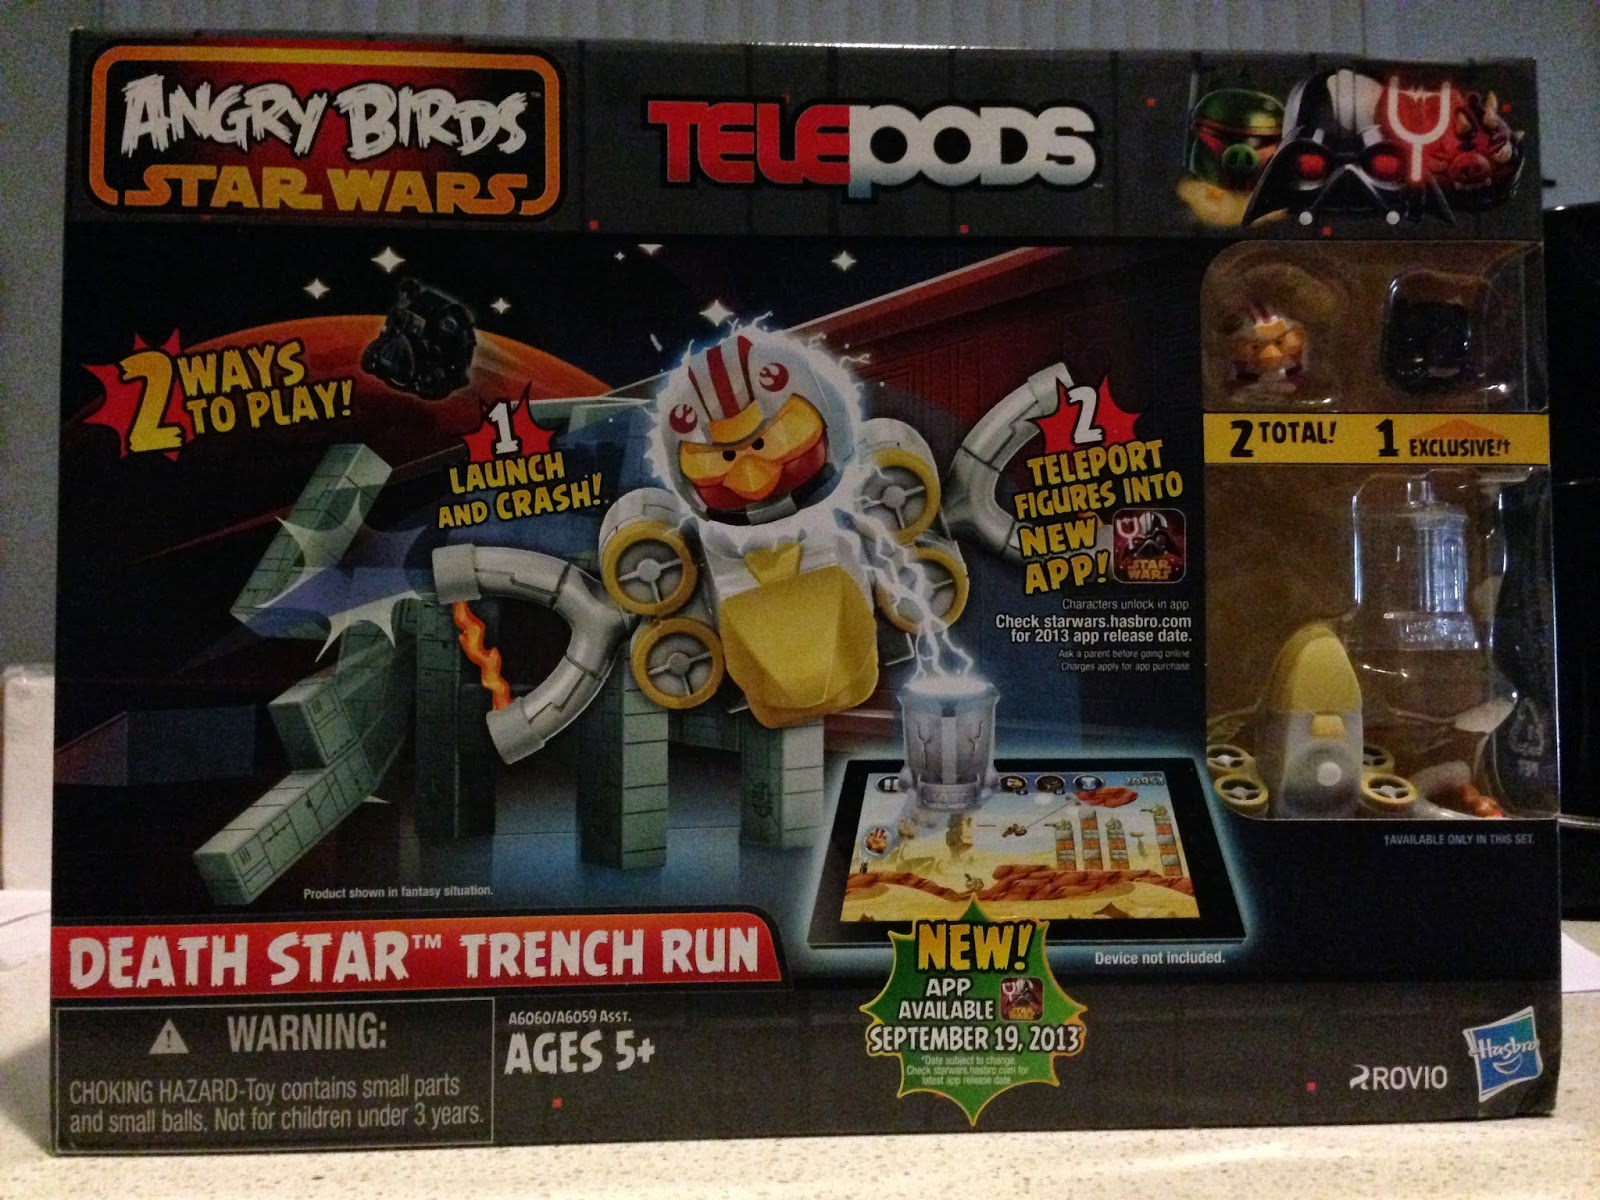 Angry birds star wars telepods vehicle pack death star - Angry birds star wars 8 ...